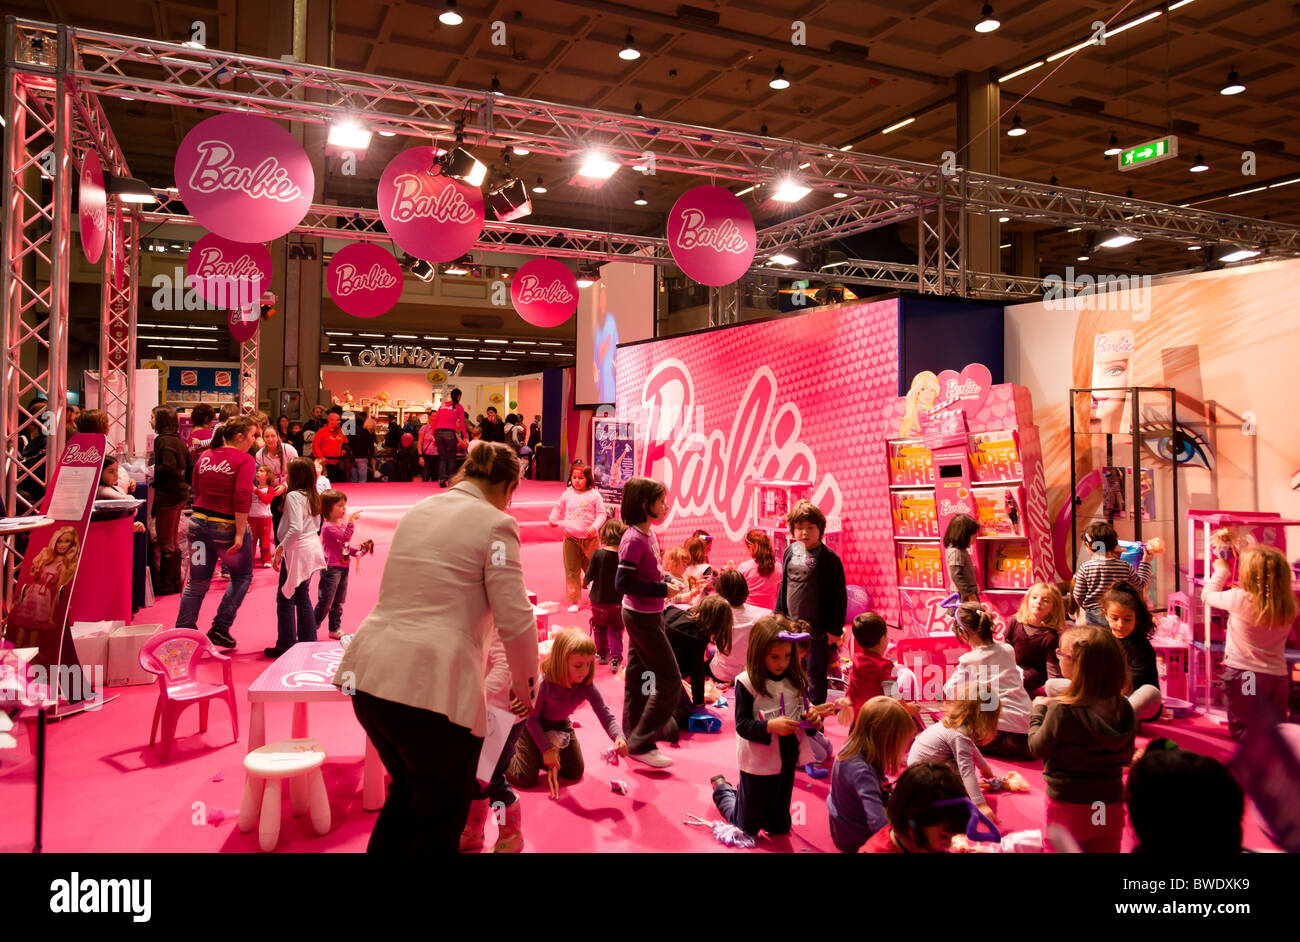 images Inside The Barbie Exhibition In Milan